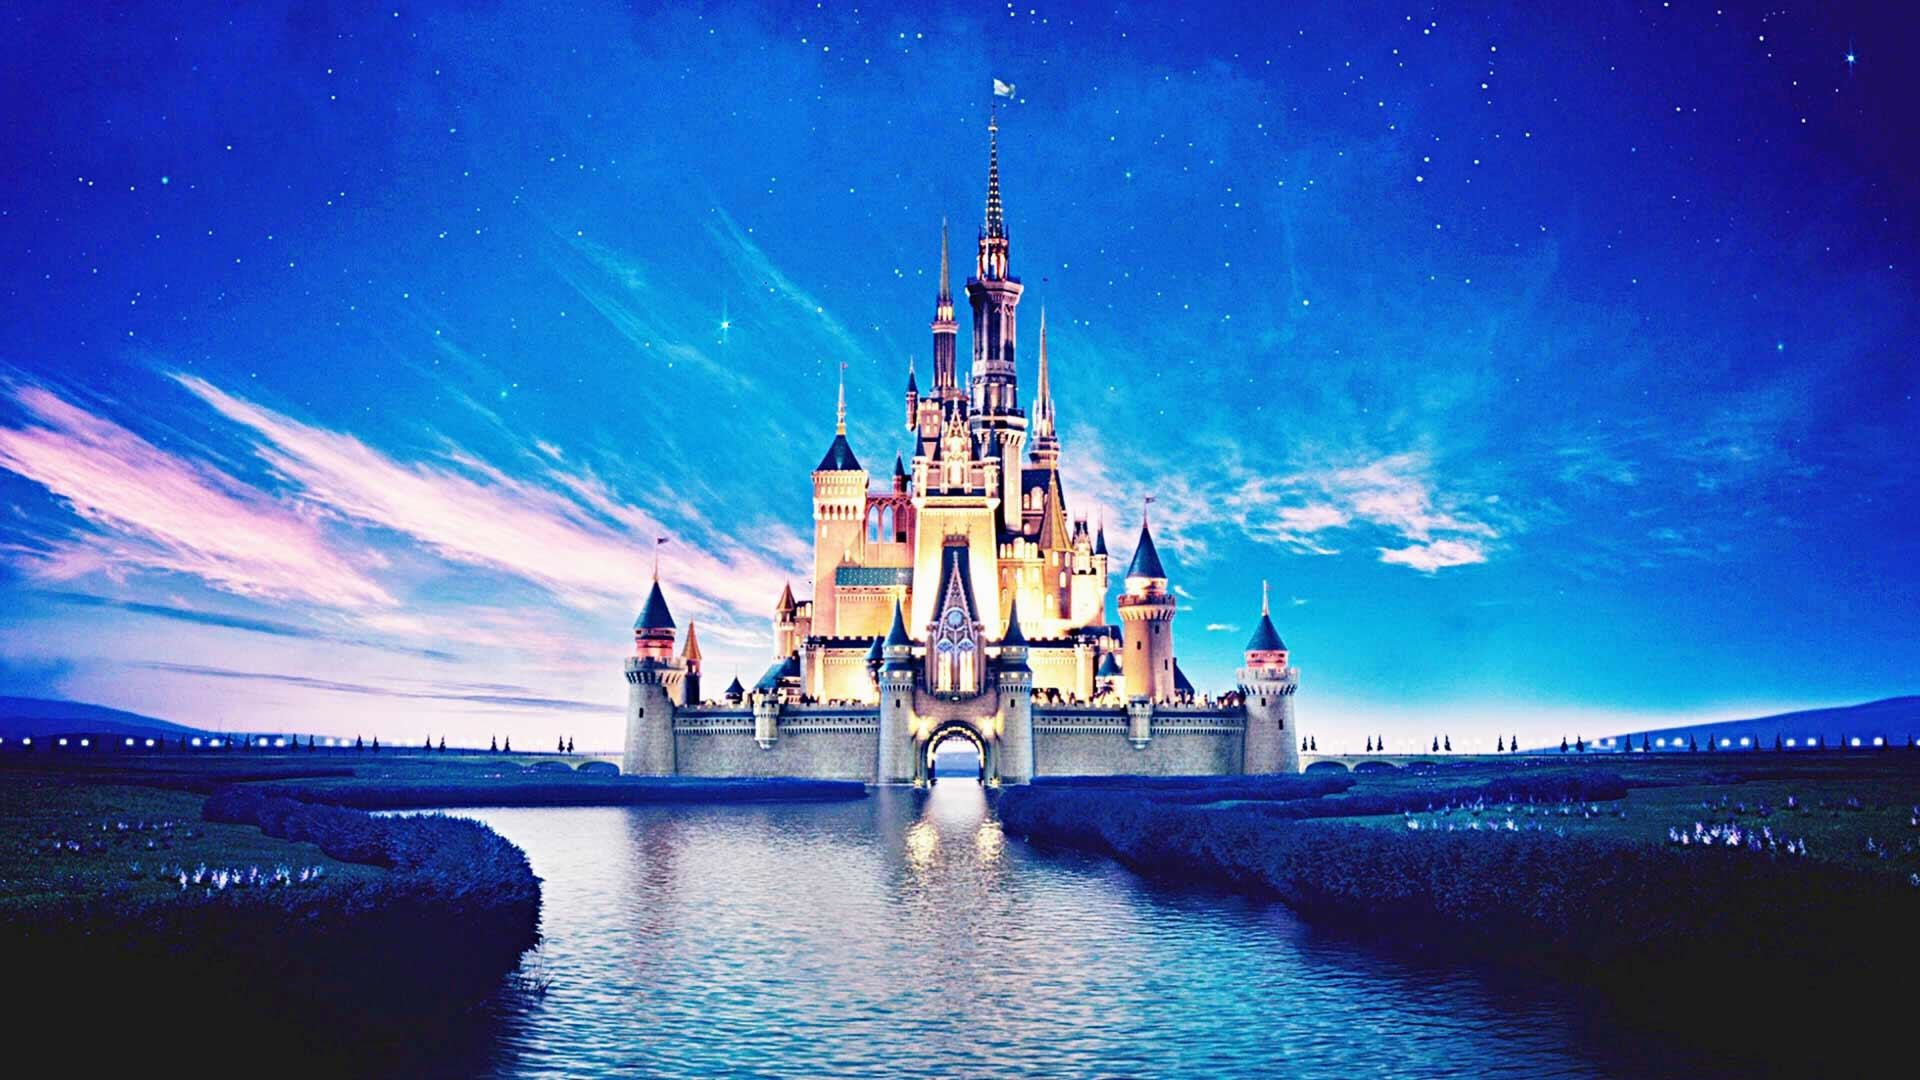 wallpaper.wiki-Download-disney-castle-images-widescreen-PIC-